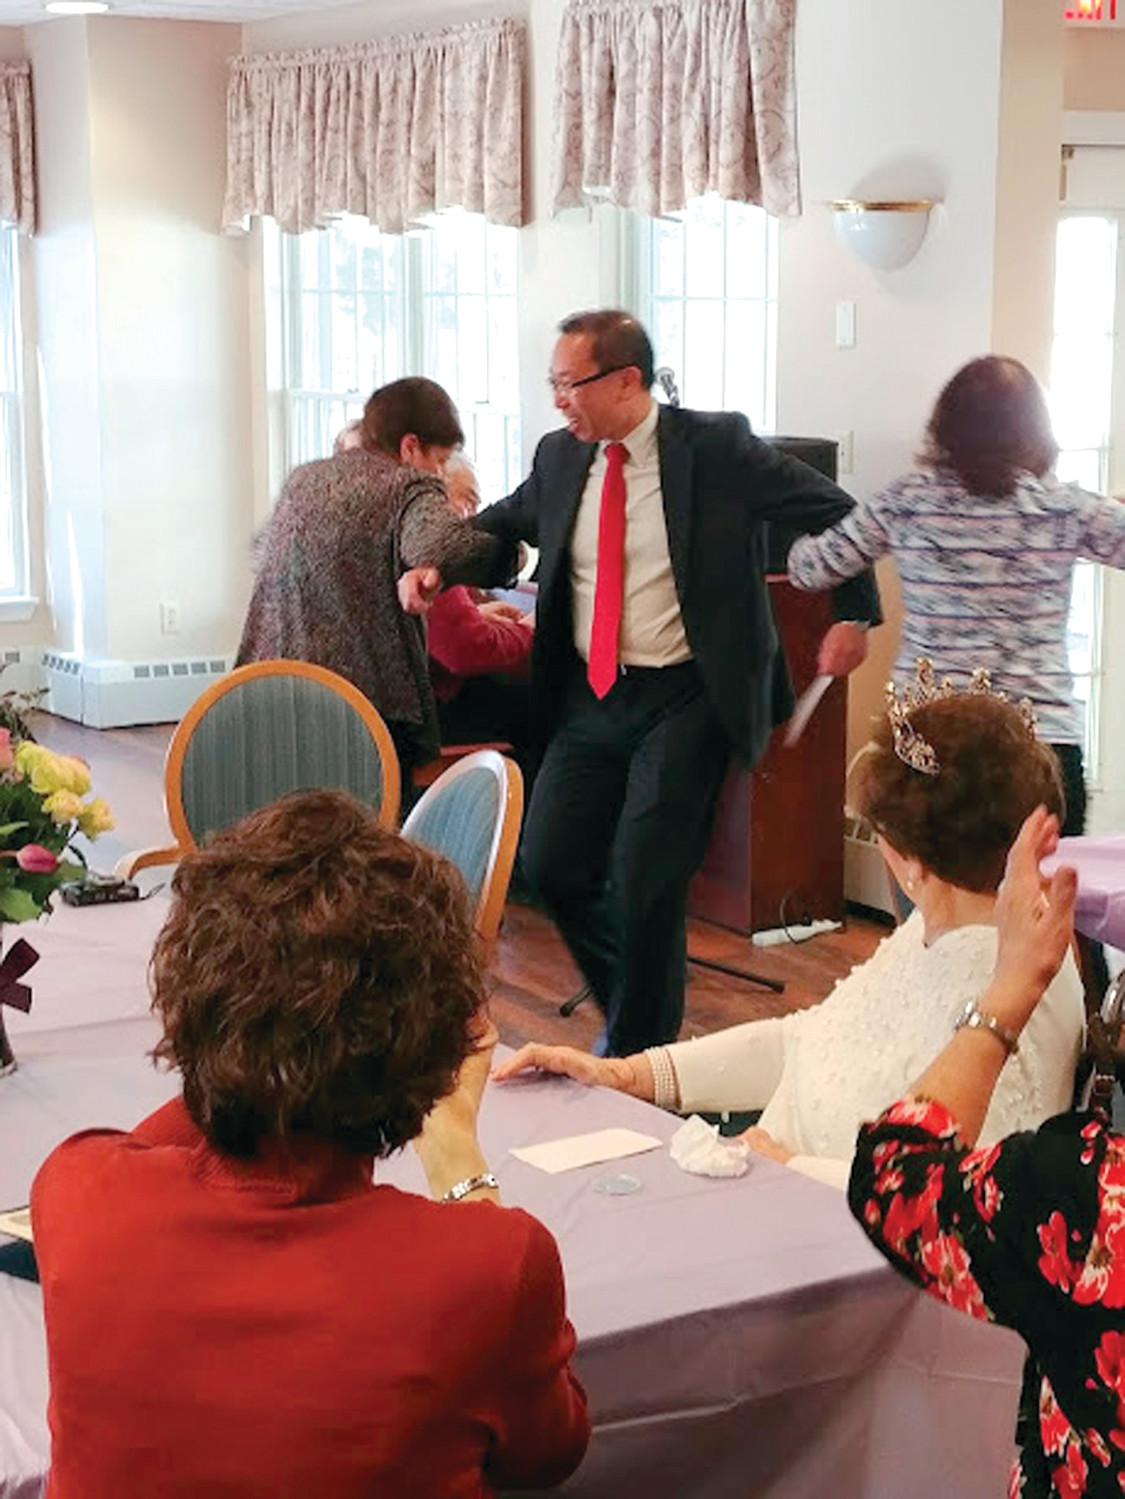 CELEBRATING OLGA SUSI: Mayor Allan Fung takes part in the dancing, singing and celebrating at Susi's birthday party.